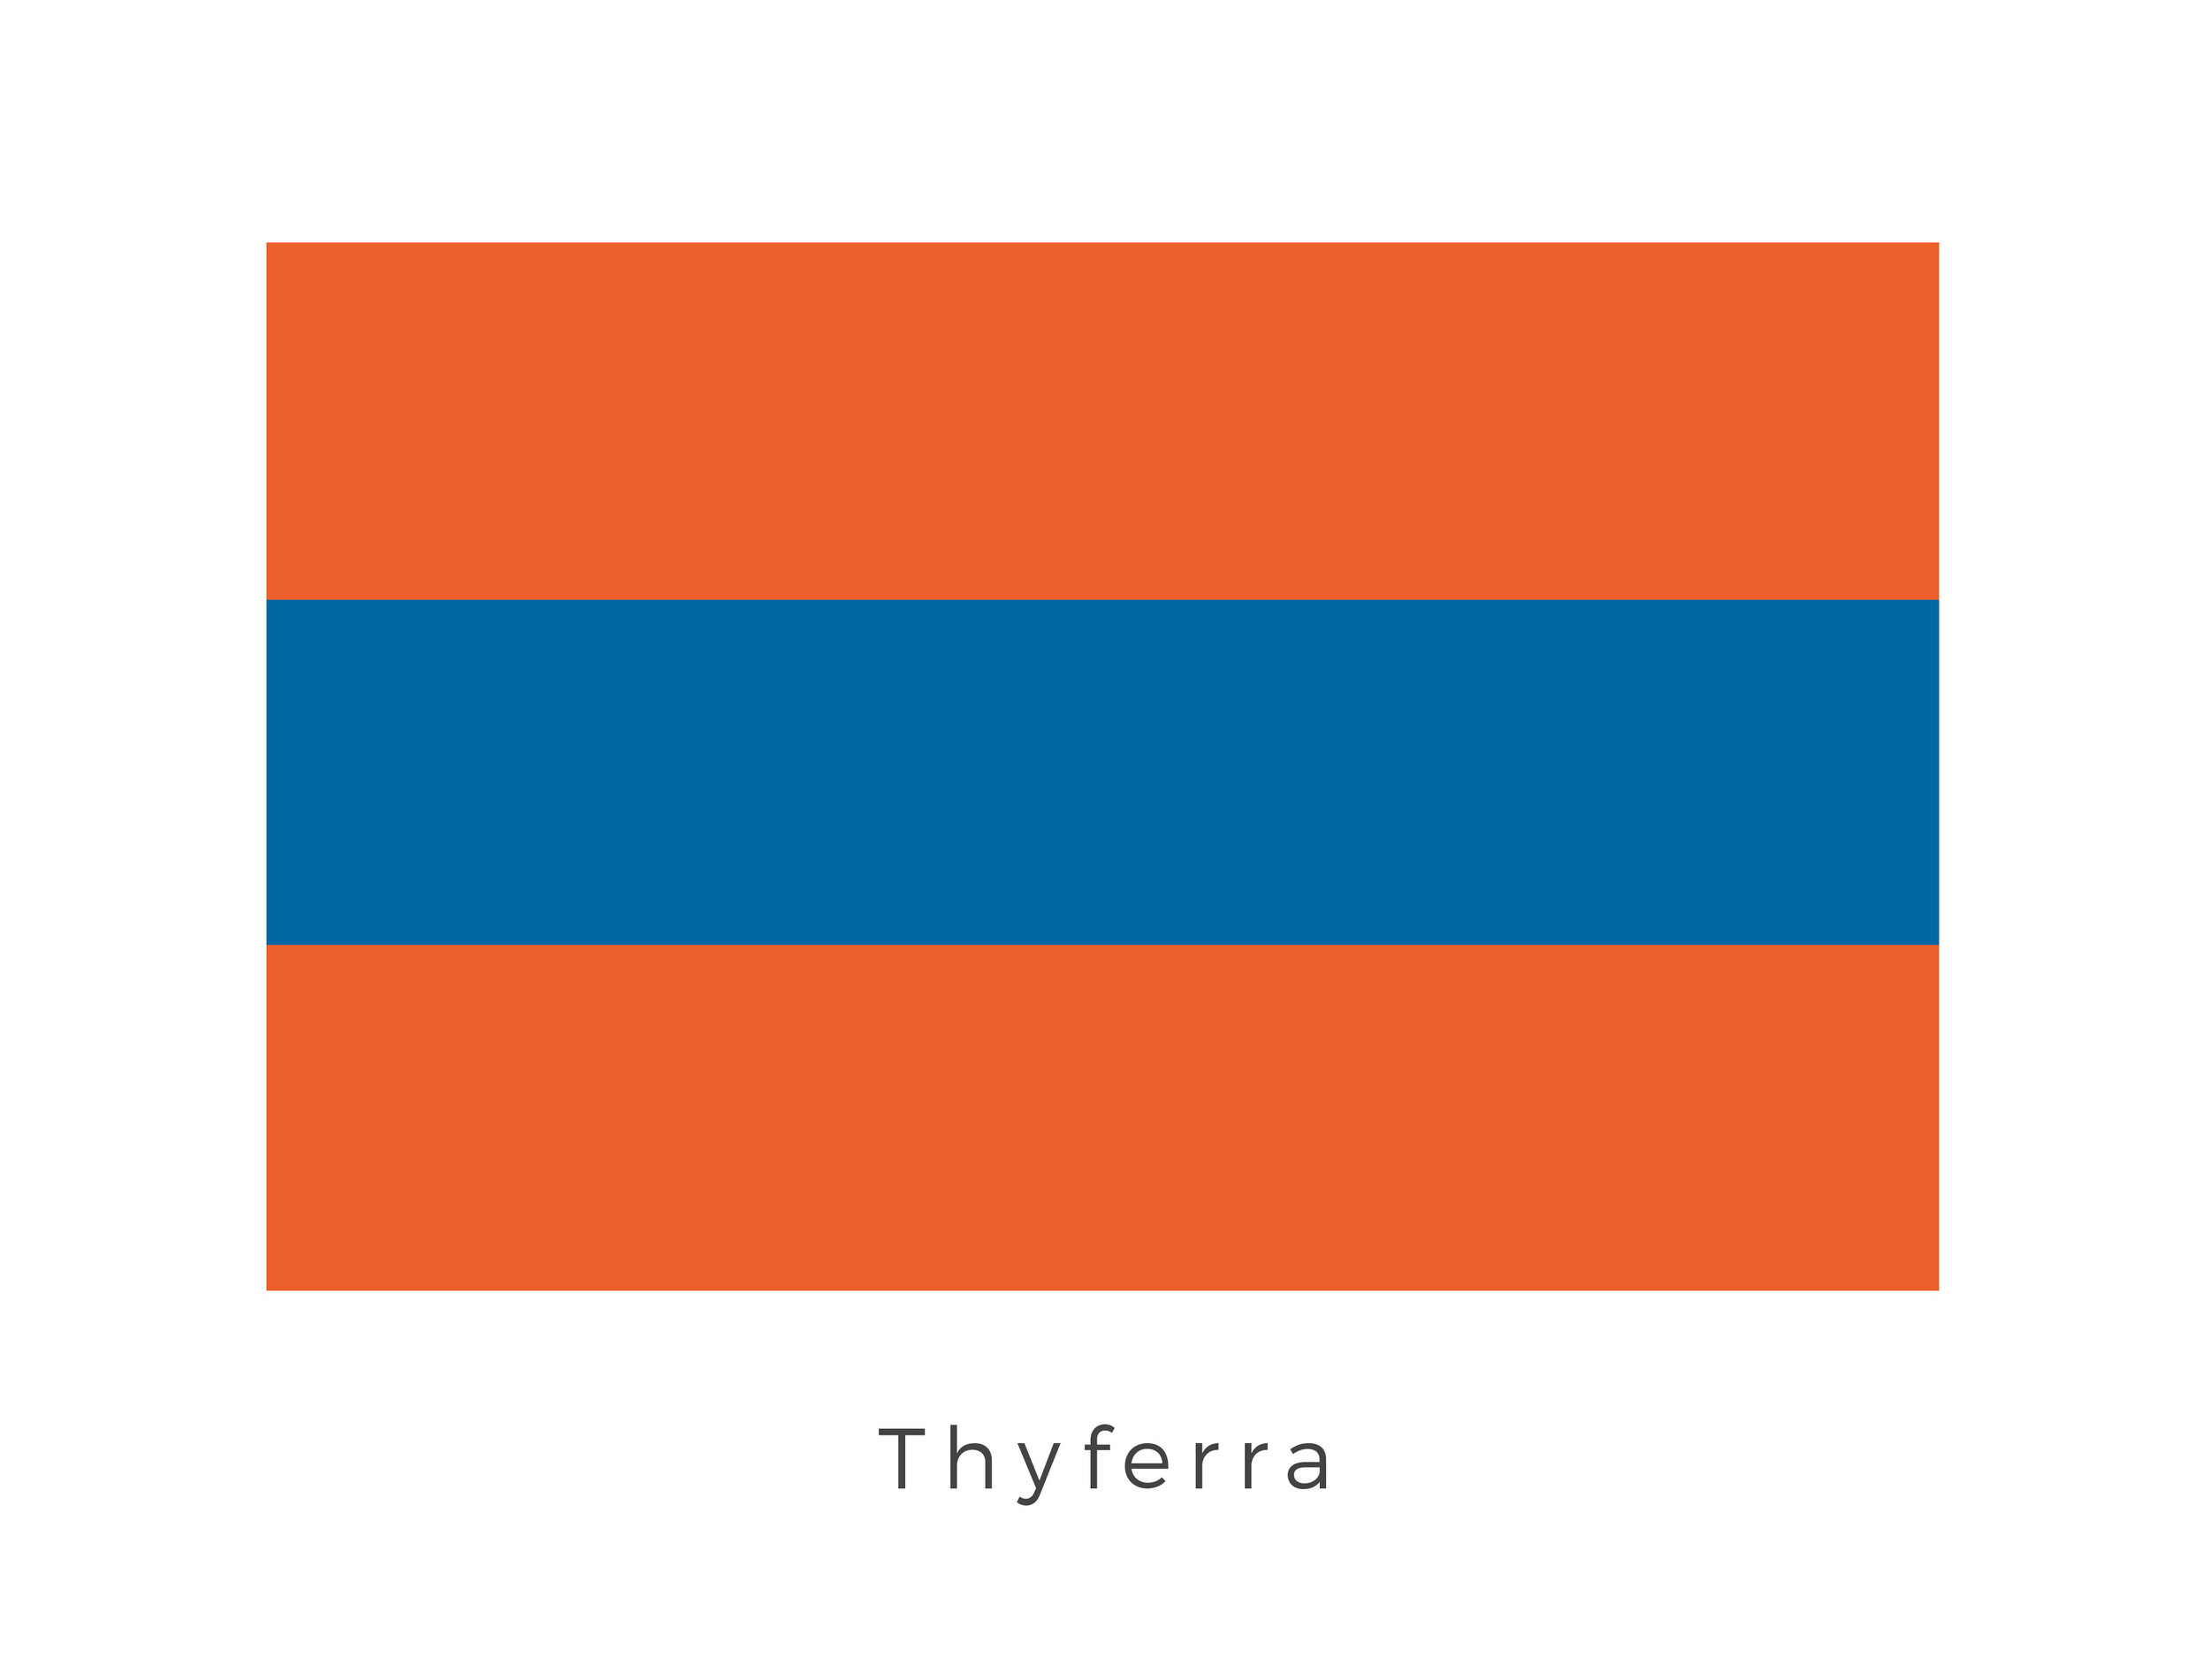 Thyferra  was a hot, humid planet located in the Polith system on the Rimma Trade Route, on which most of the galaxy's bacta was produced. It was also a major political power as bacta production was an essential commodity. The orange bands on either side represent the planets two moons, while the blue band in the middle represents the planets significant and precious supplies of bacta.